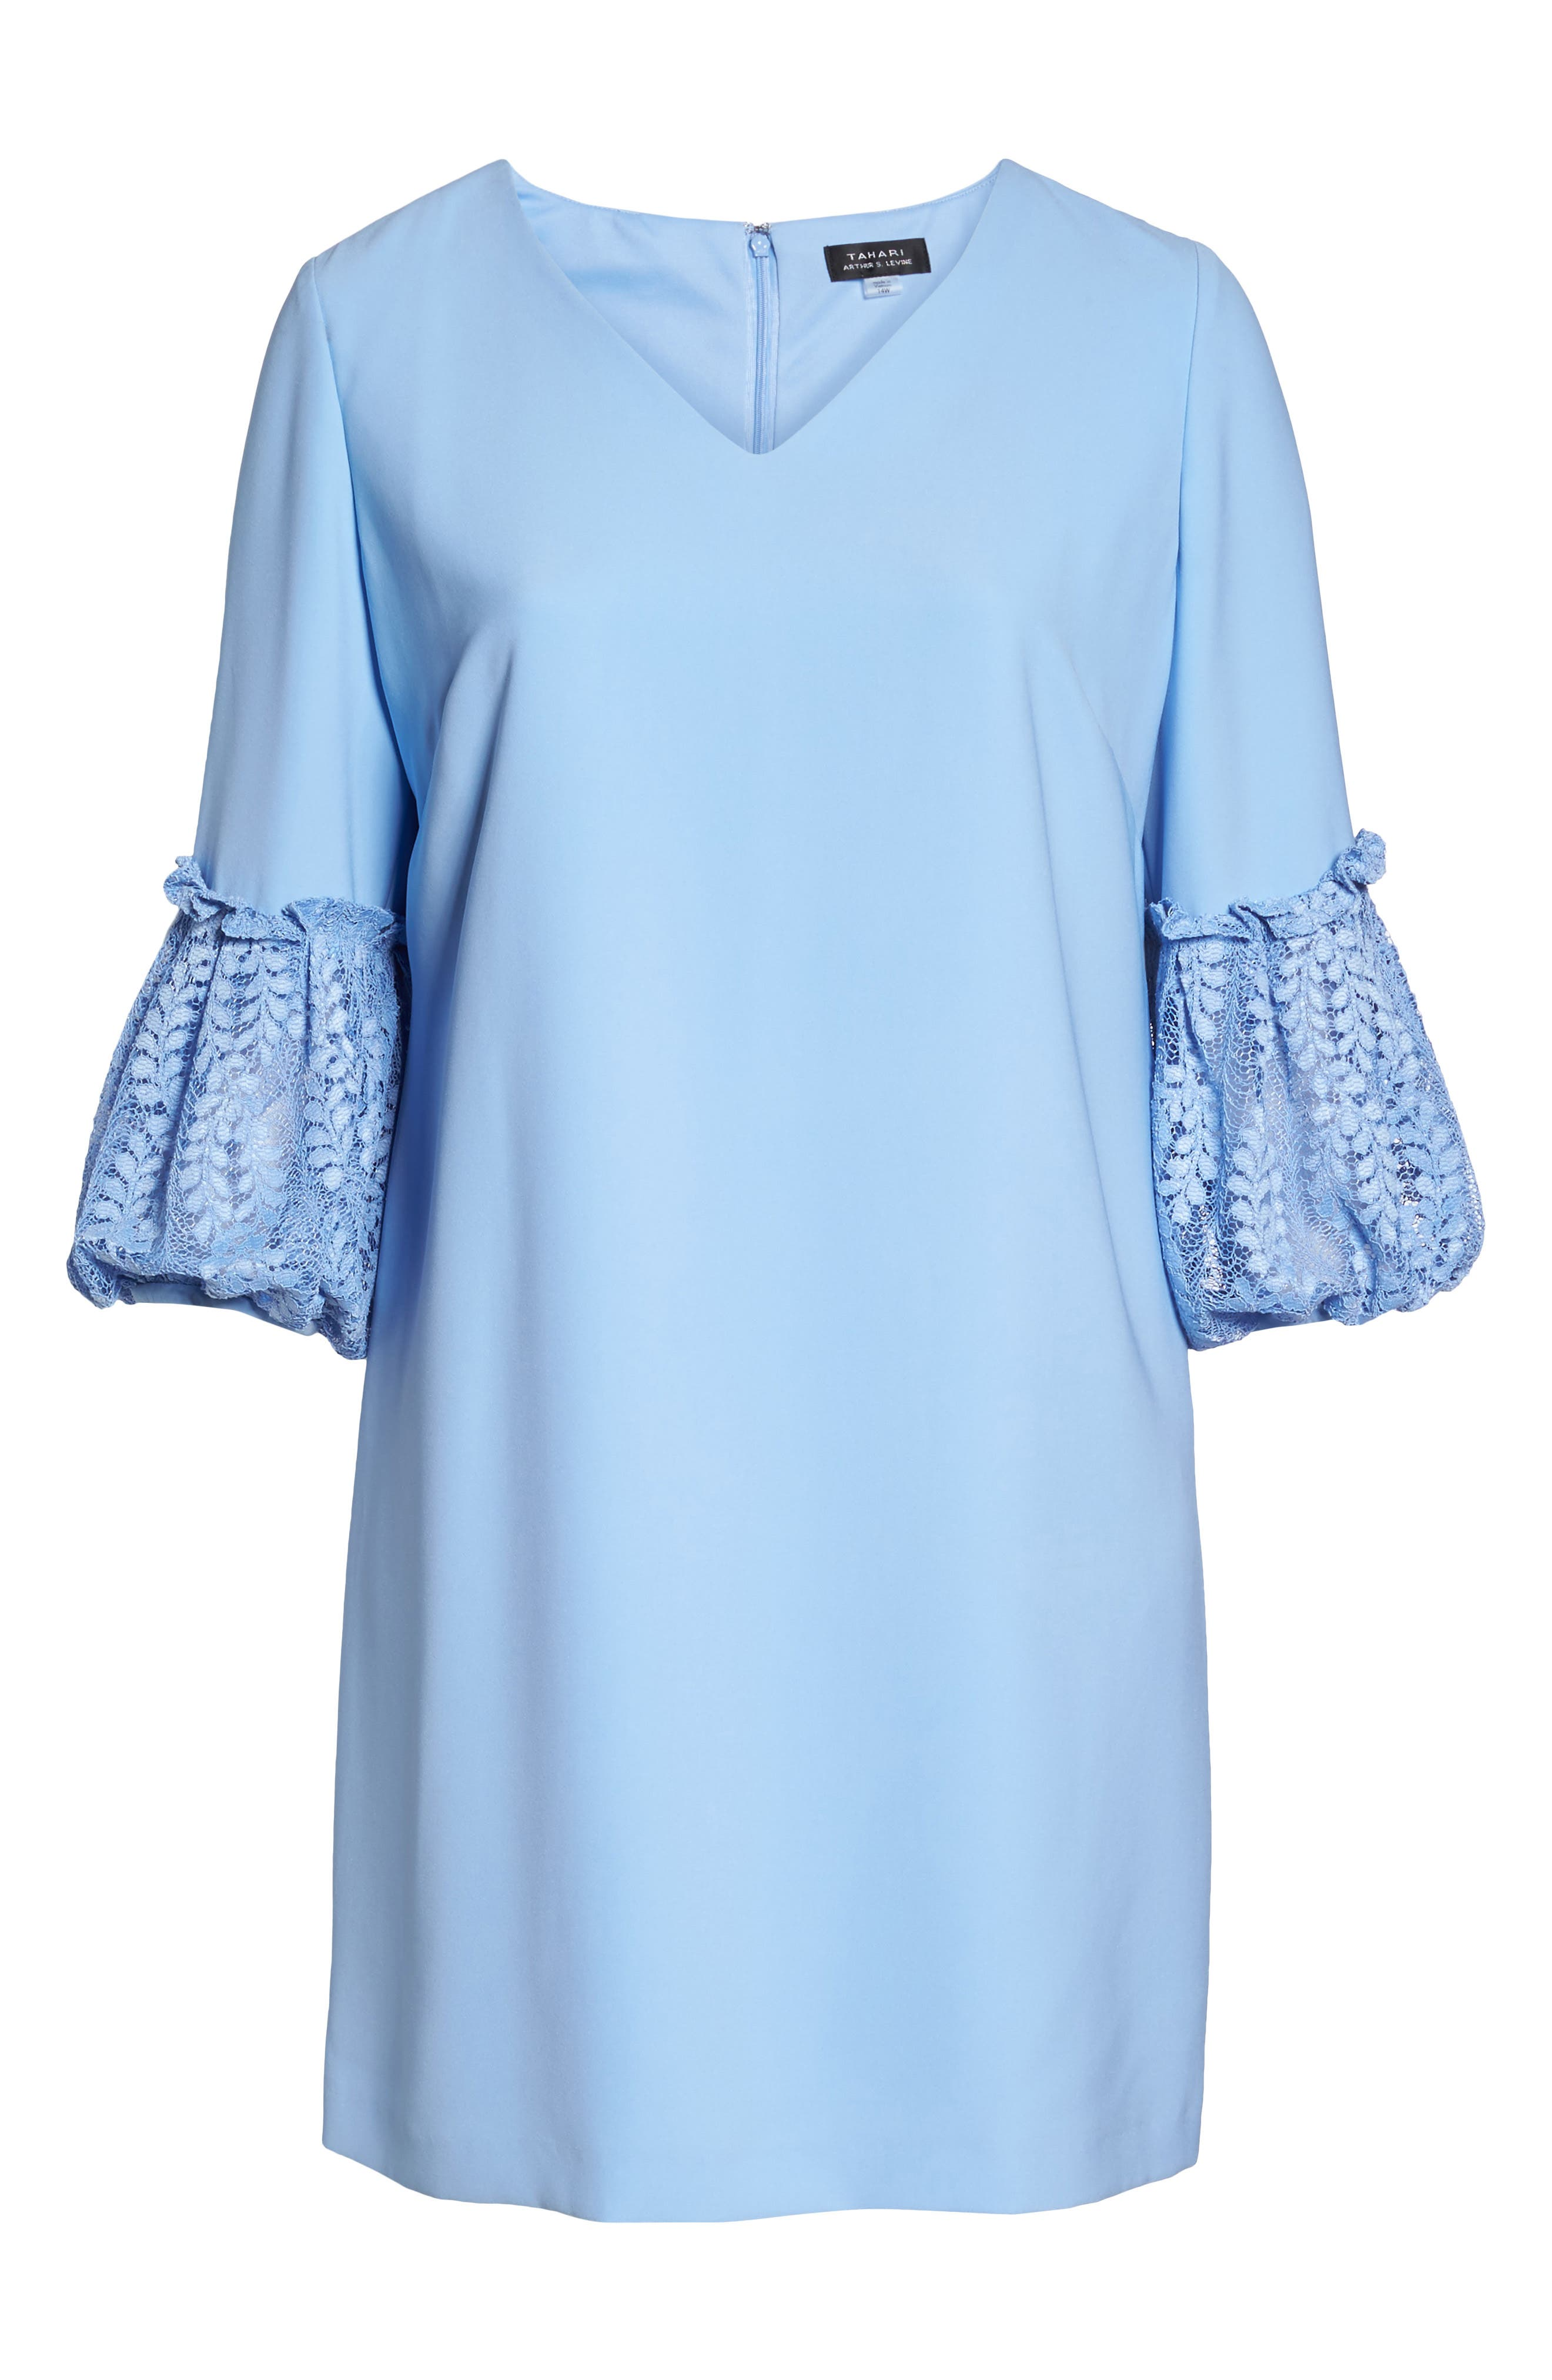 Lace Bell Sleeve Shift Dress,                             Alternate thumbnail 6, color,                             Periwinkle